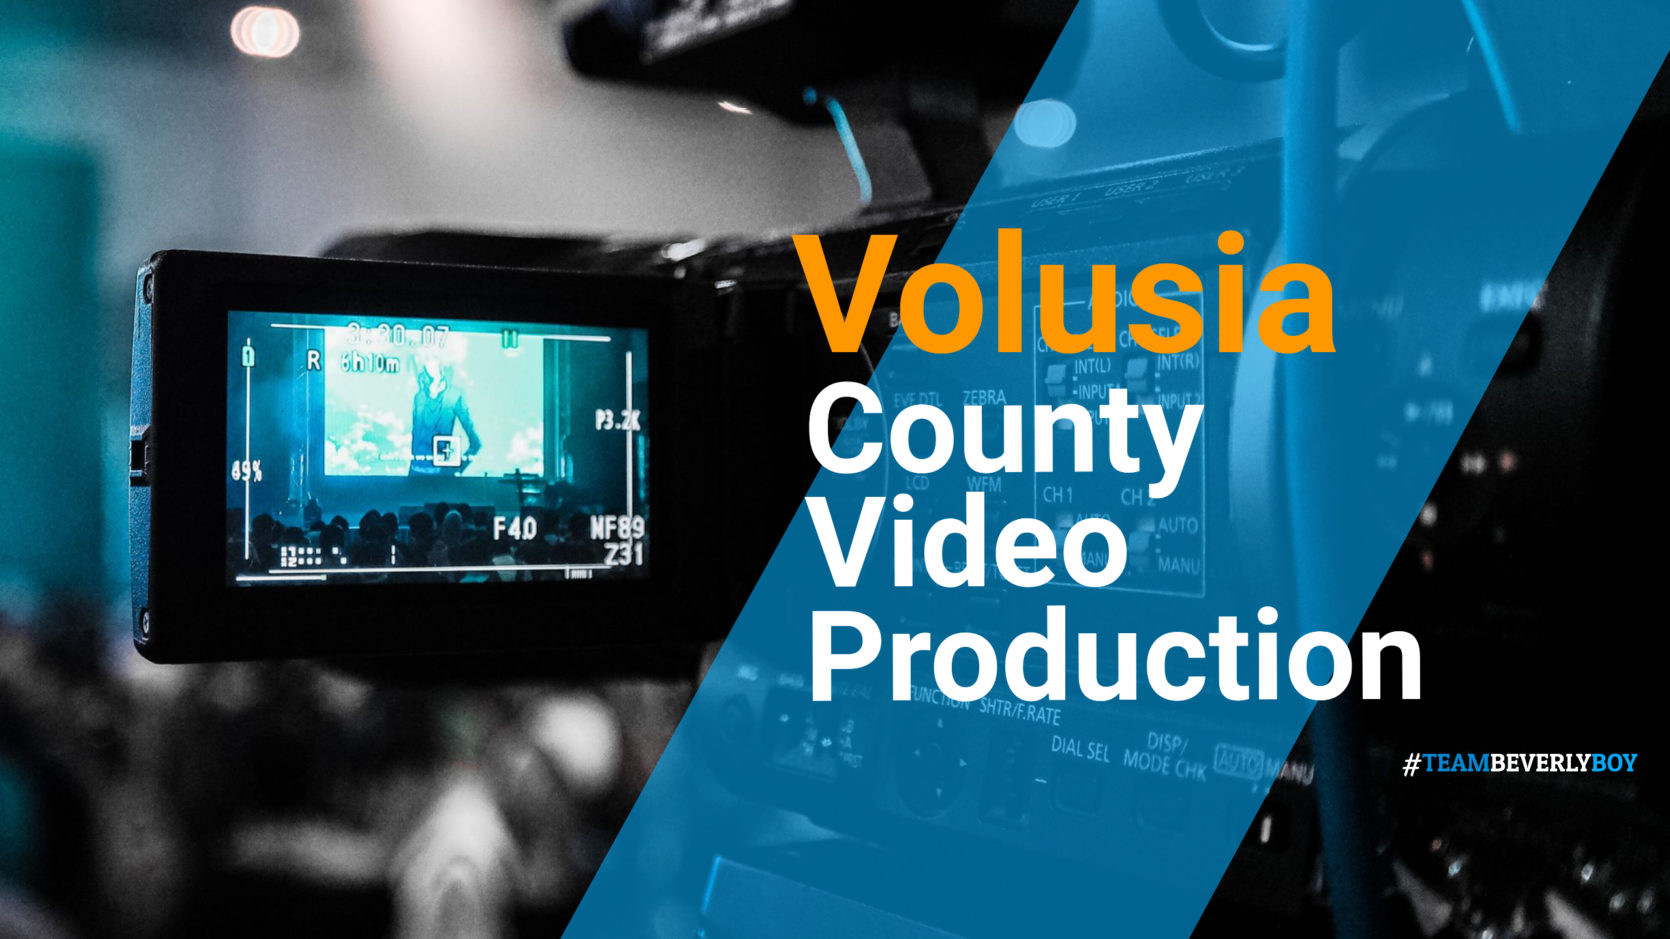 Volusia County Video Production